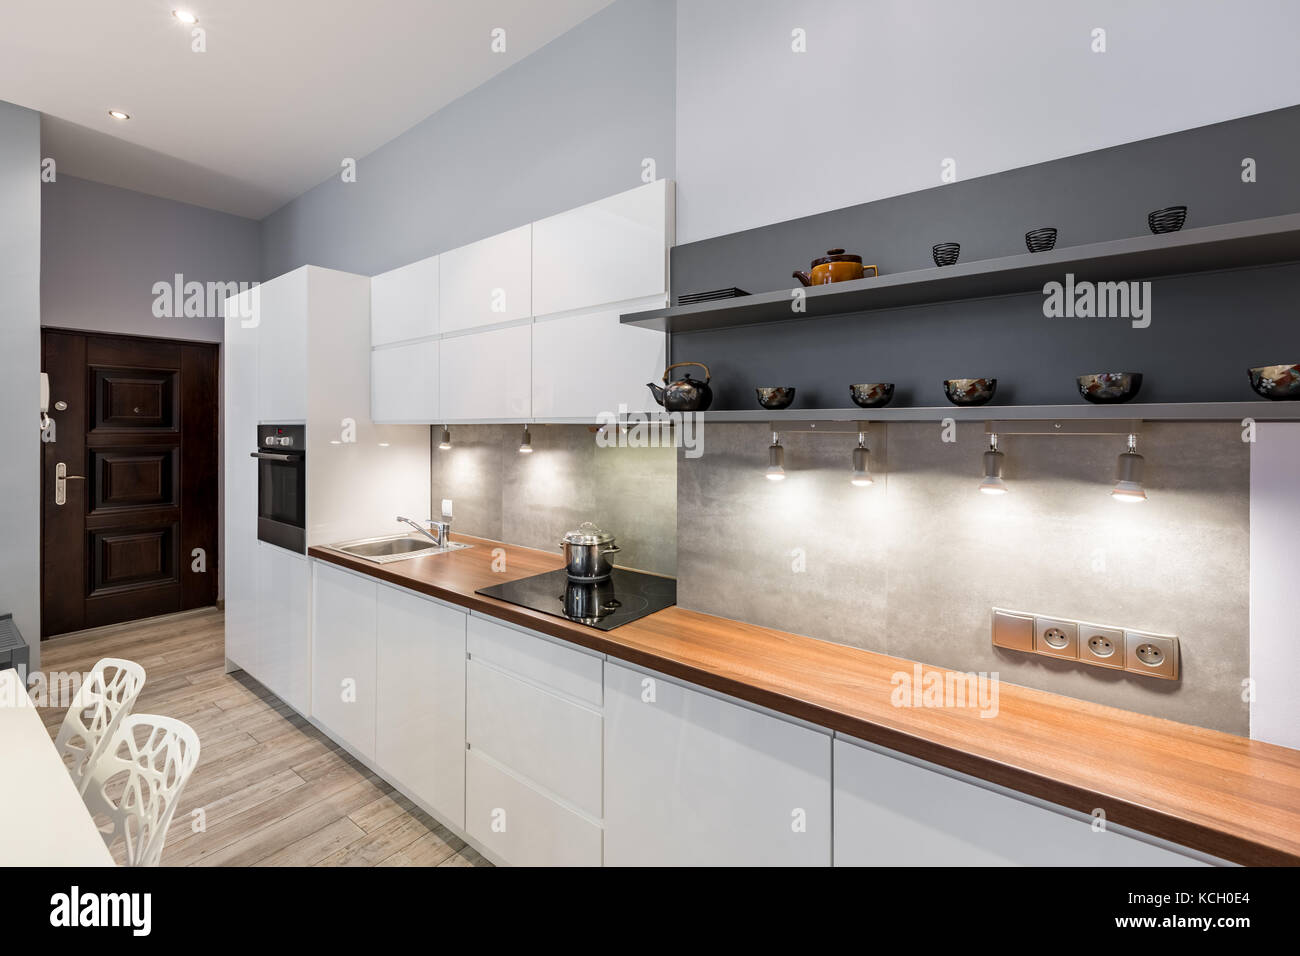 Contemporary White Kitchen With Wooden Countertop And Led Lighting Stock Photo Alamy